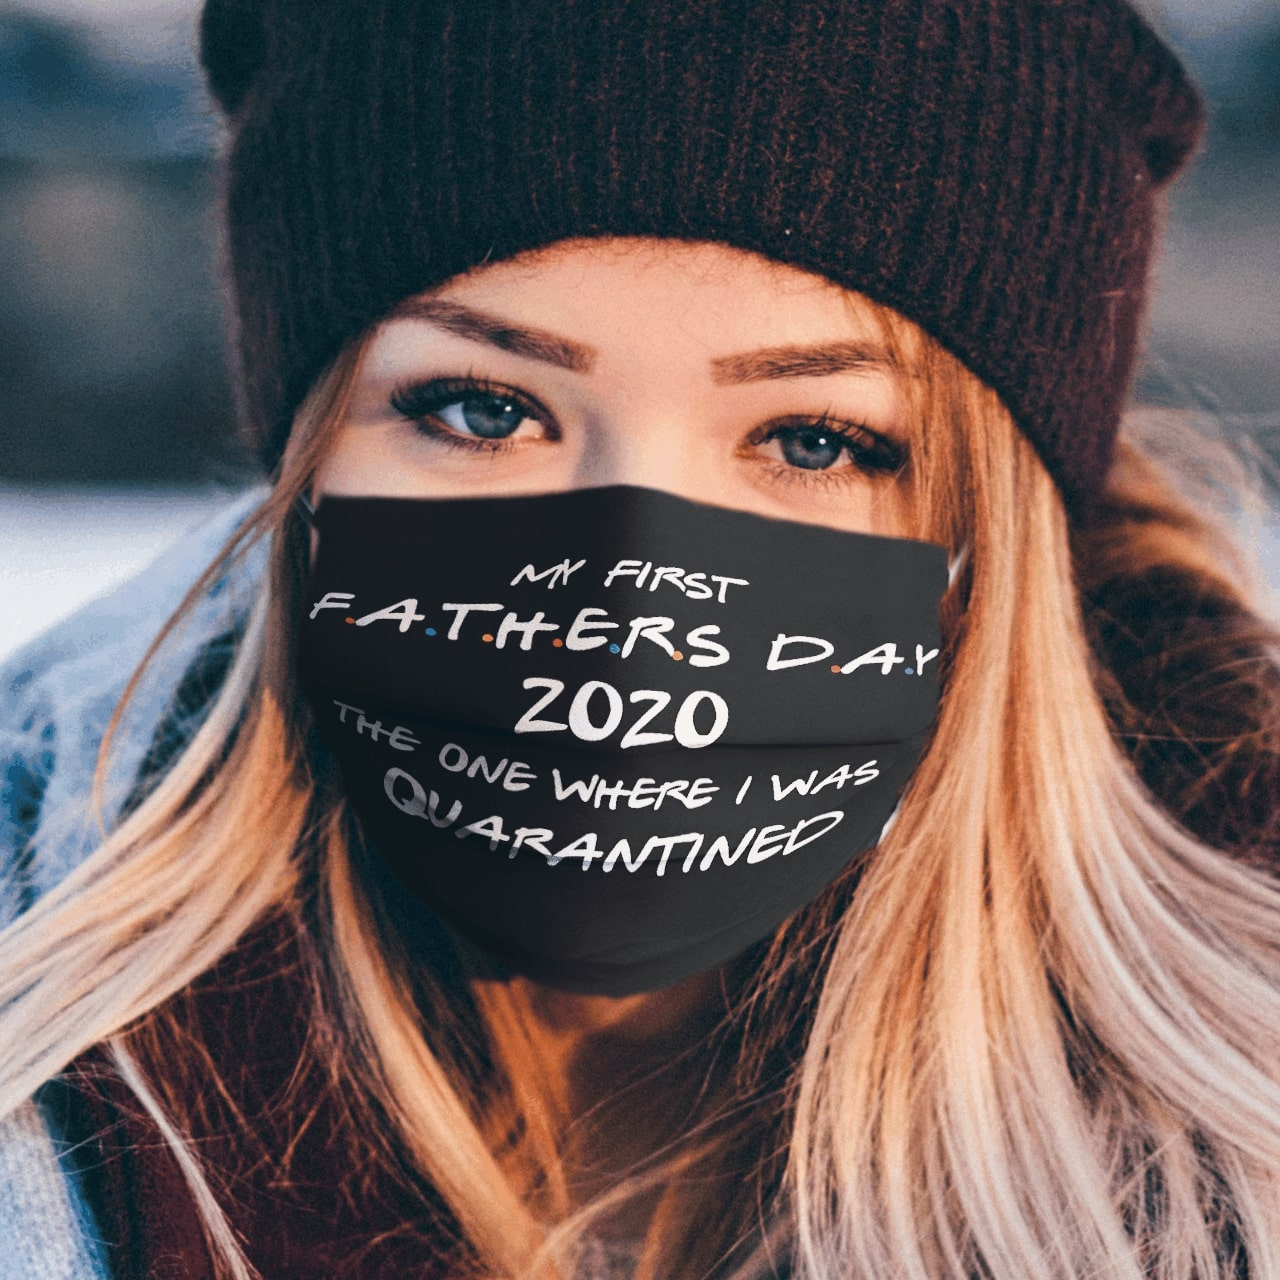 My first father's day 2020 the one i was in quarantined cotton face mask 2